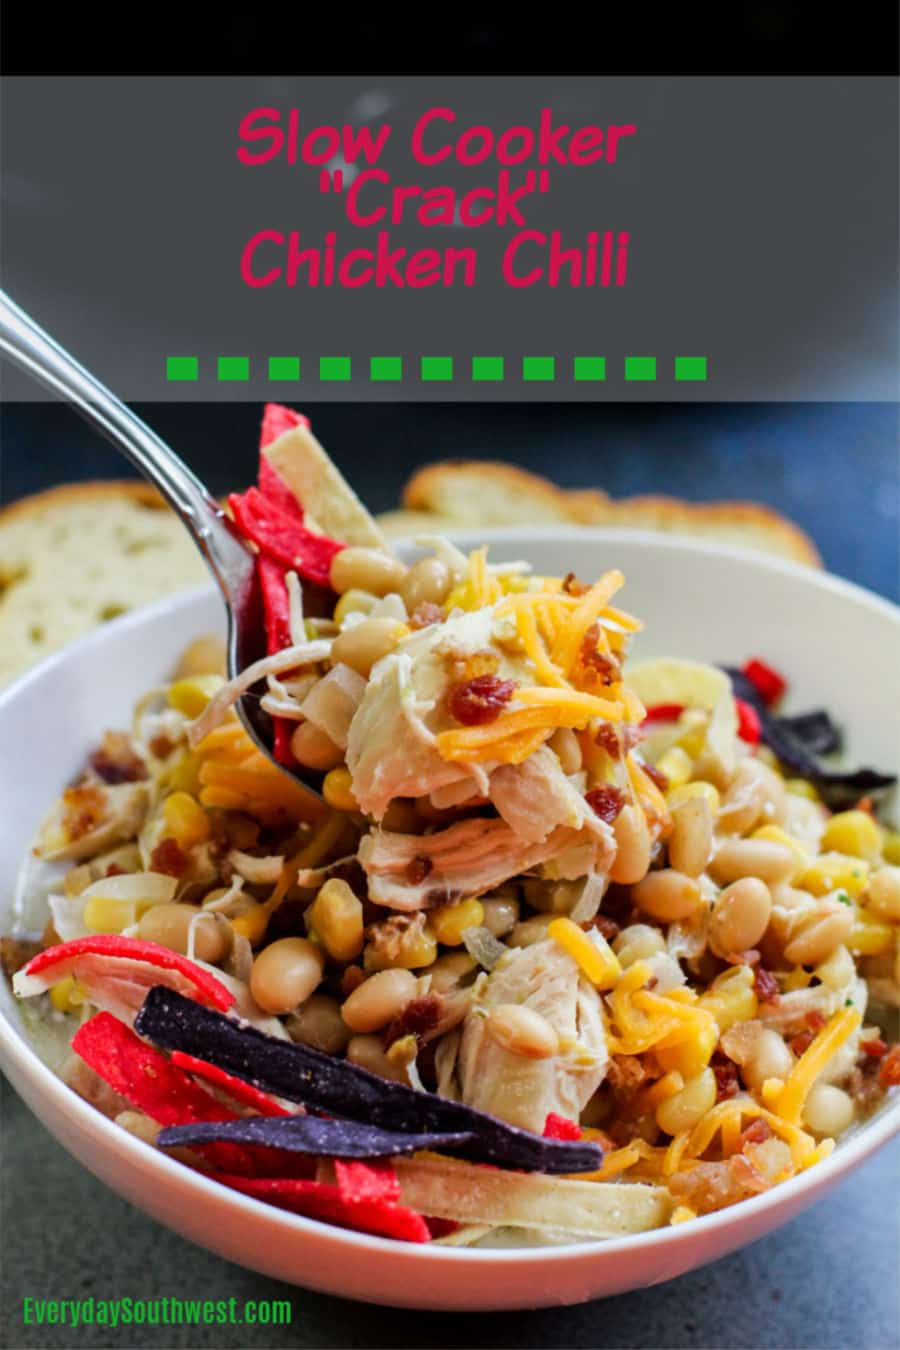 Slow Cooker Crack Chicken Chili Everyday Southwest,Origami For Beginners Step By Step